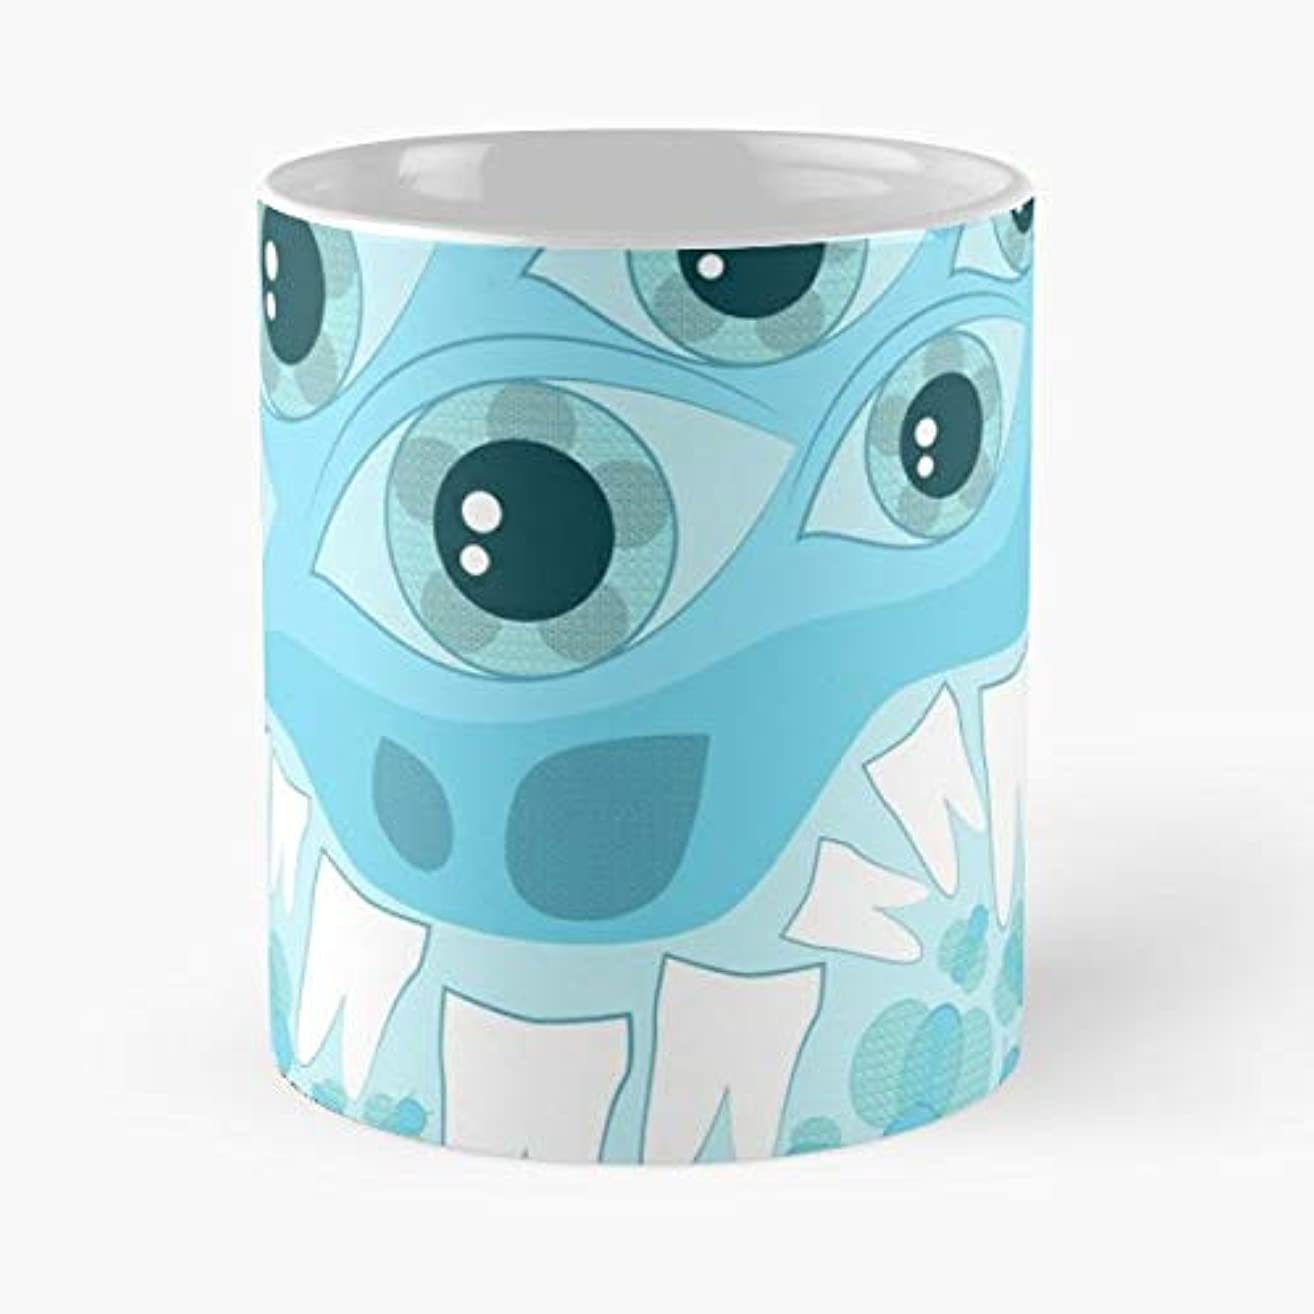 Spider Spiders Eye Eyes - 11 Oz Coffee Mugs Unique Ceramic Novelty Cup, The Best Gift For Halloween.